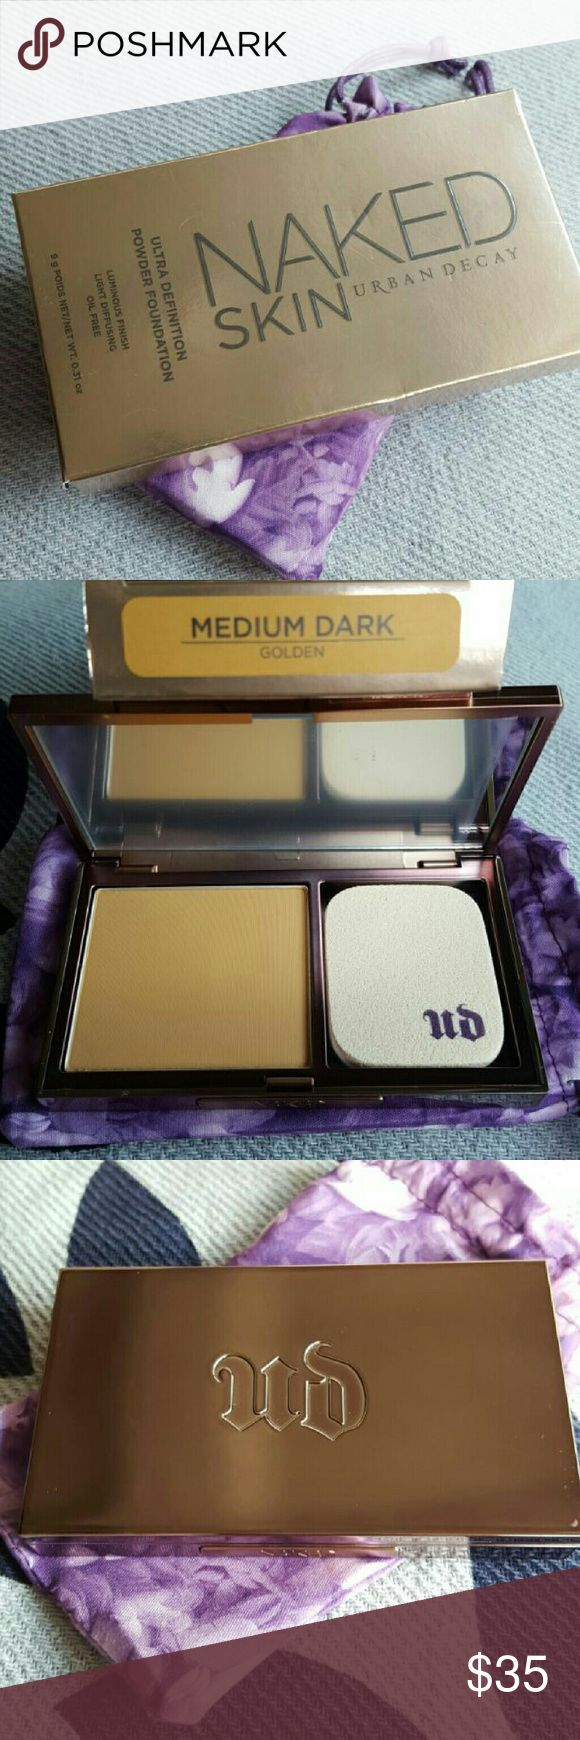 Urban Decay-Ultra definition Powder Foundation NIB Brand New Urban Decay Naked Skin  (Ultra Definition Powder Foundation) *Medium Dark/Golden *NIB / Retails  $36+ (Posh fees suck!) *Price is Firm Thank you and Happy Shopping!! (Cheaper on Merc js) Urban Decay Makeup Foundation